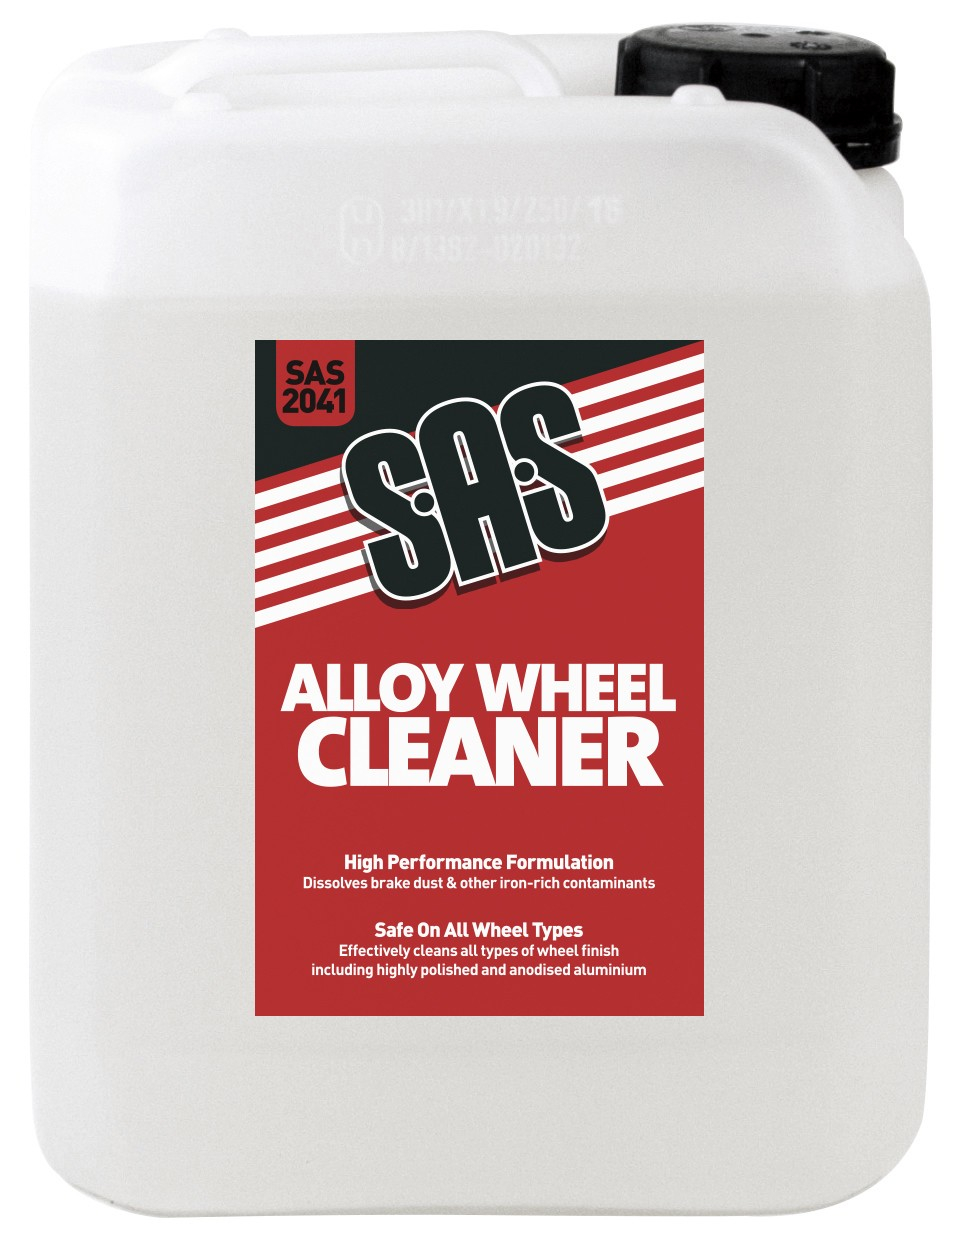 SAS2041 ALLOY WHEEL CLEANER 5 LITRES